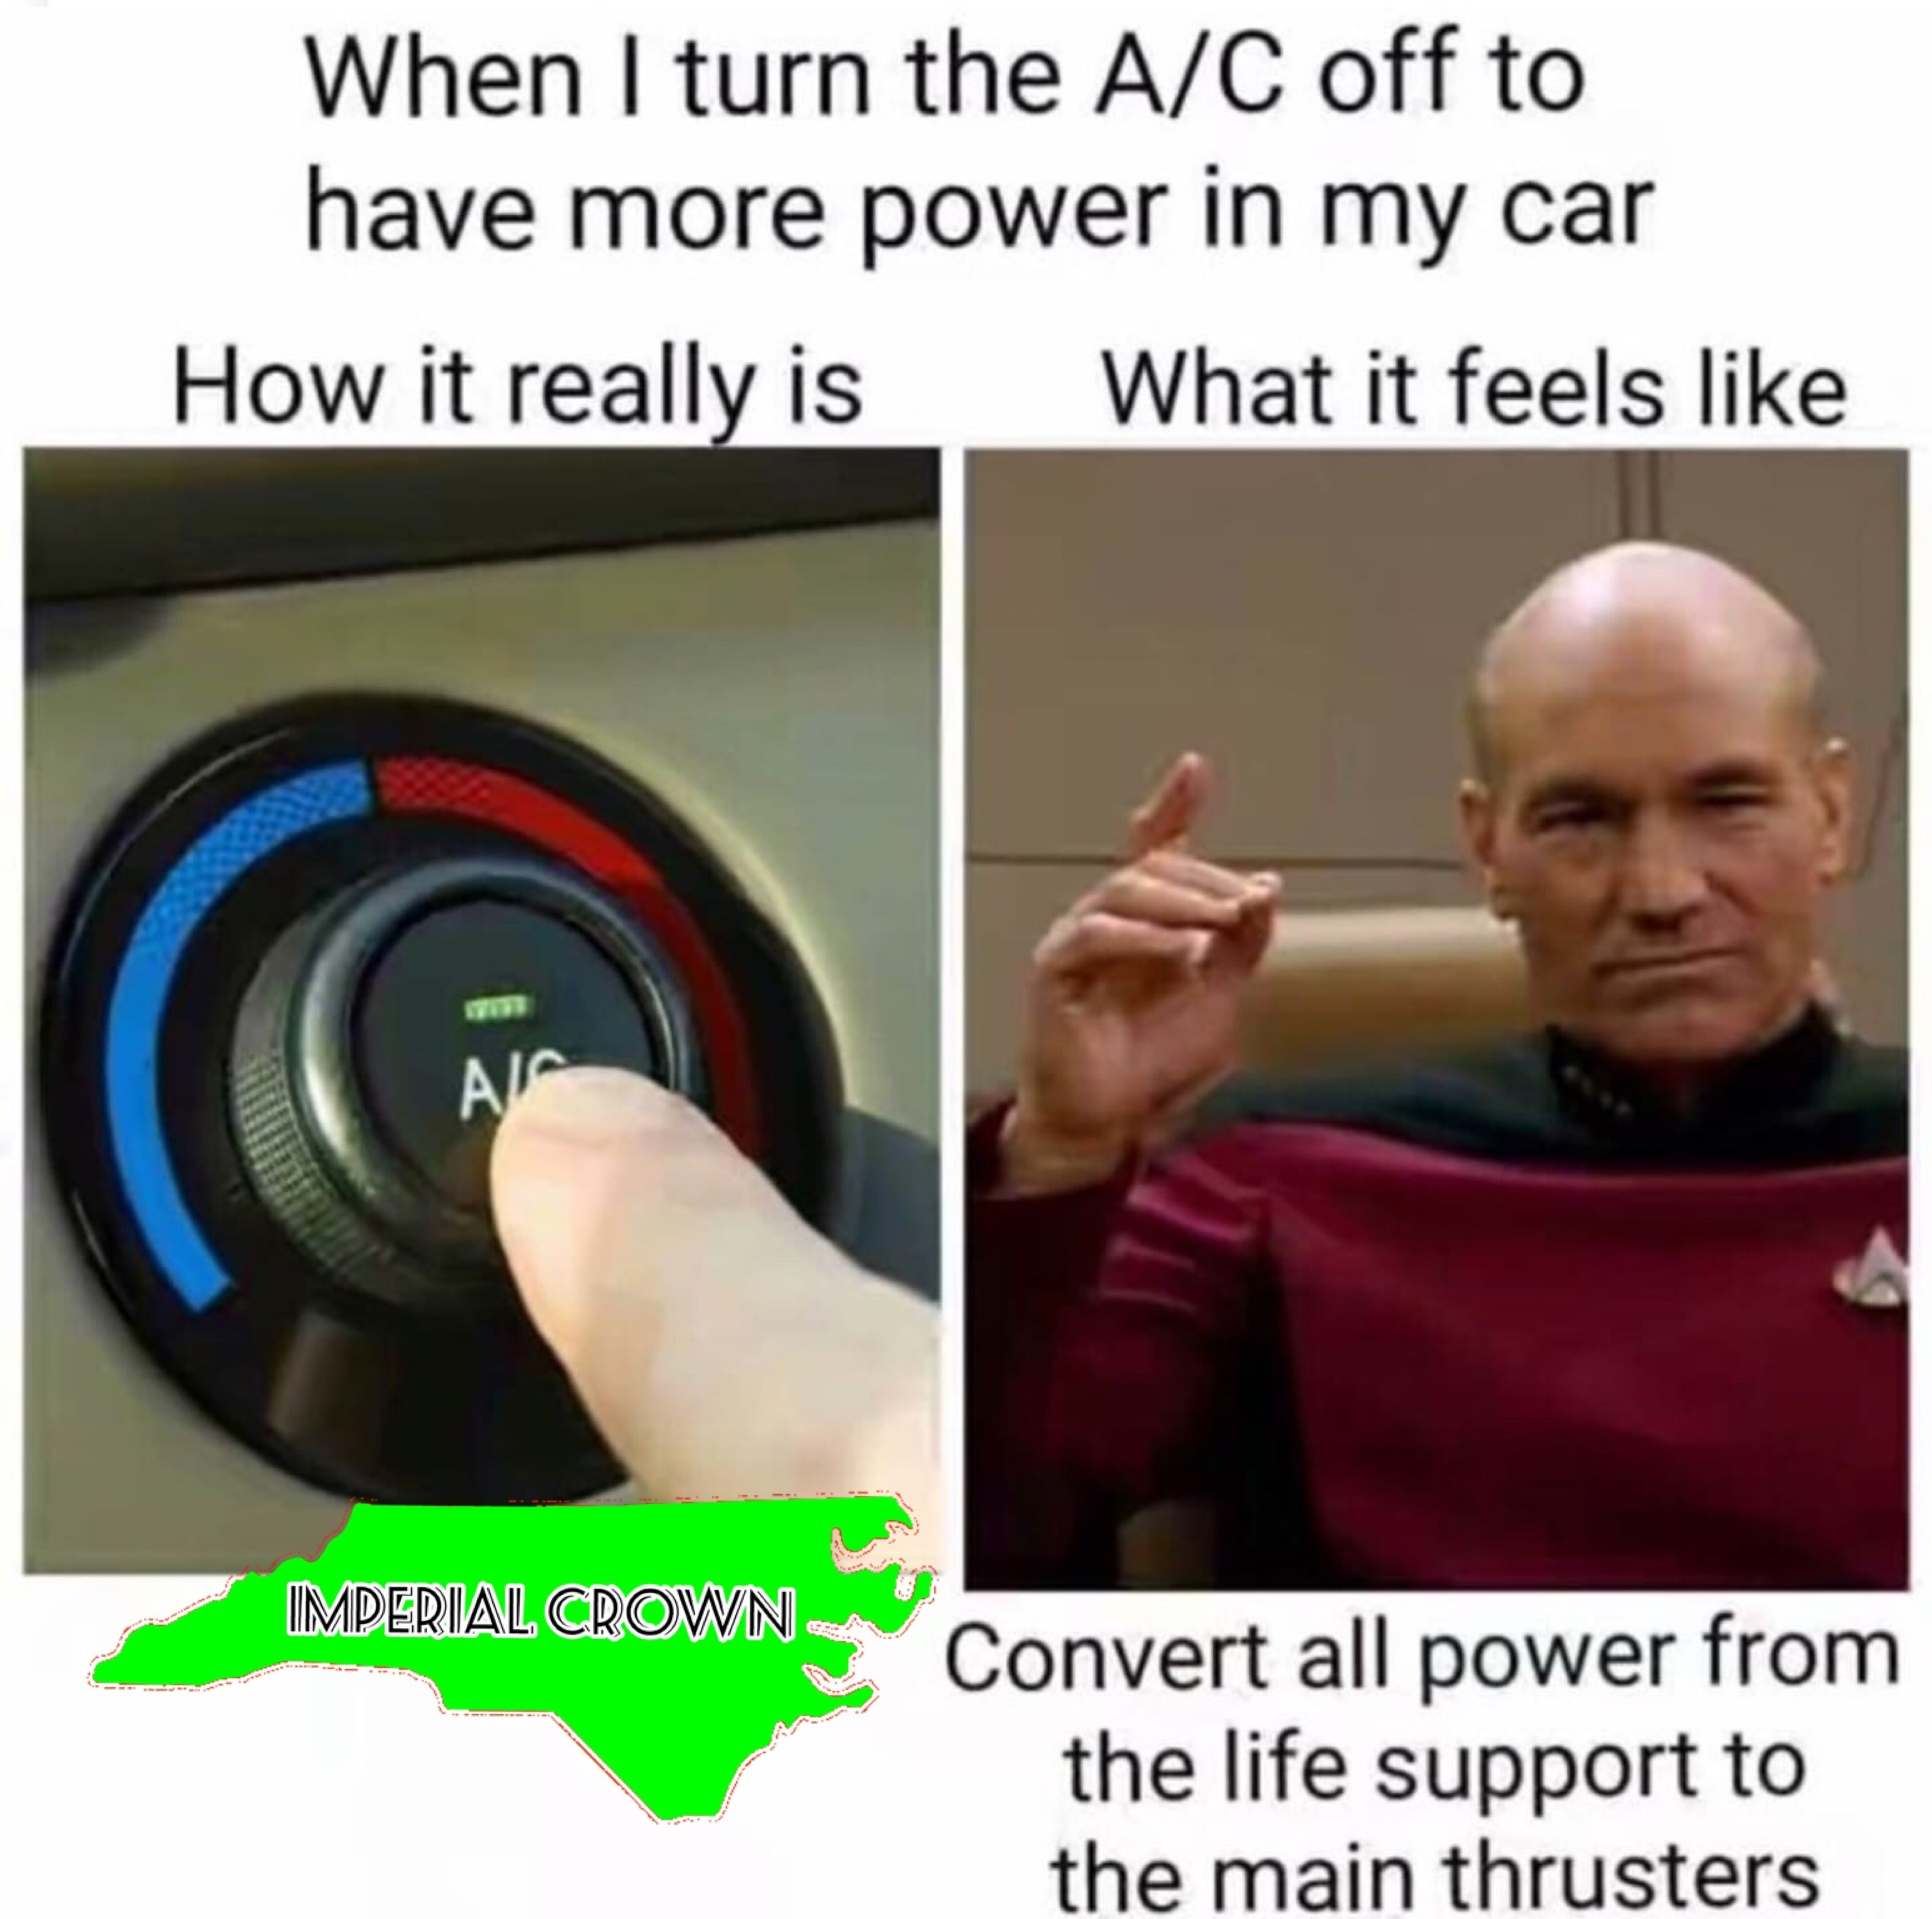 When I turn then A/C off to have more power in my car……